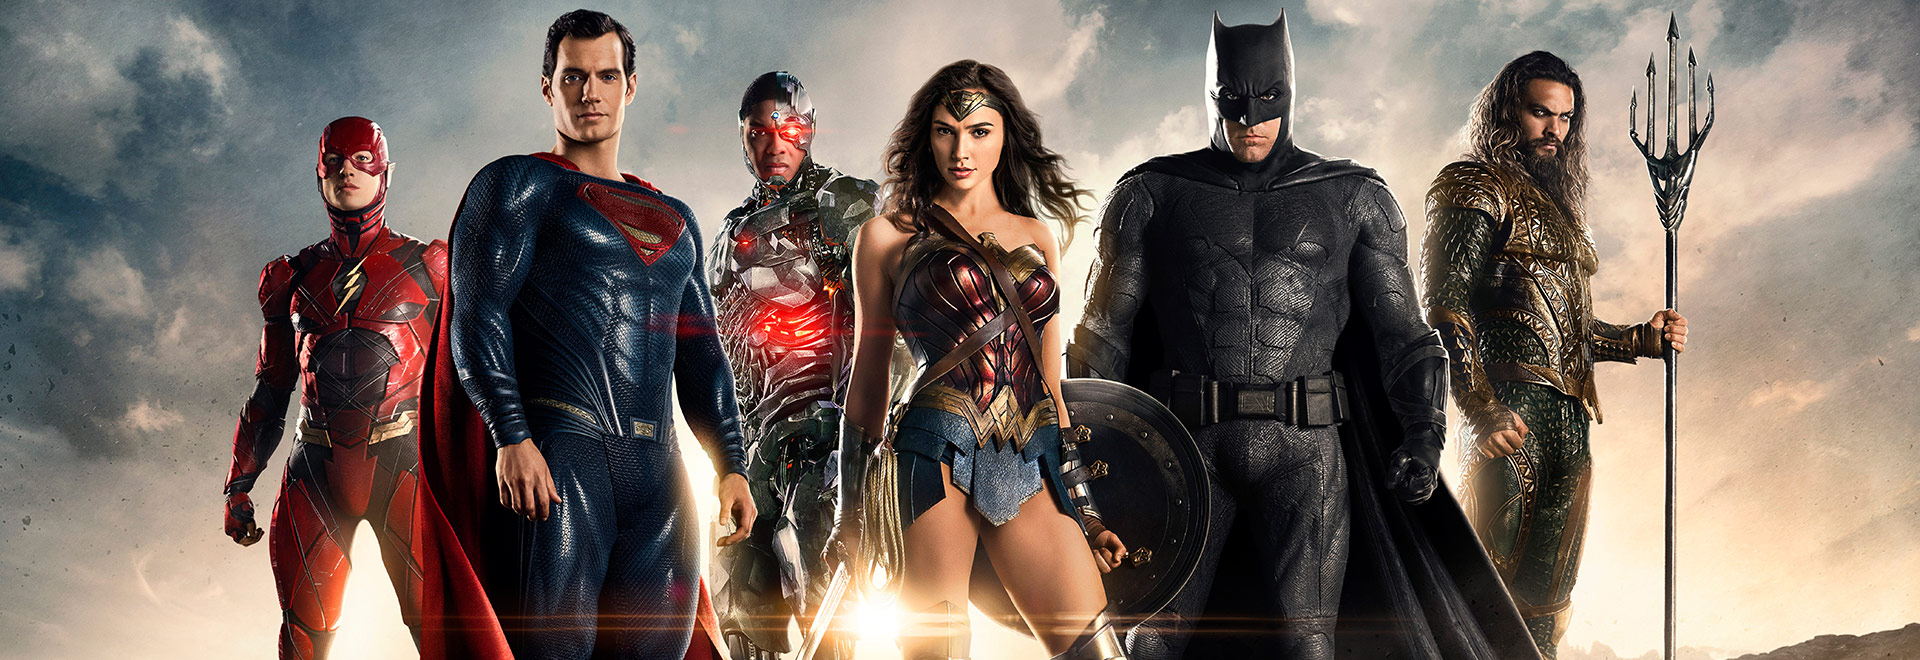 'Justice League' Comic-Con Trailer